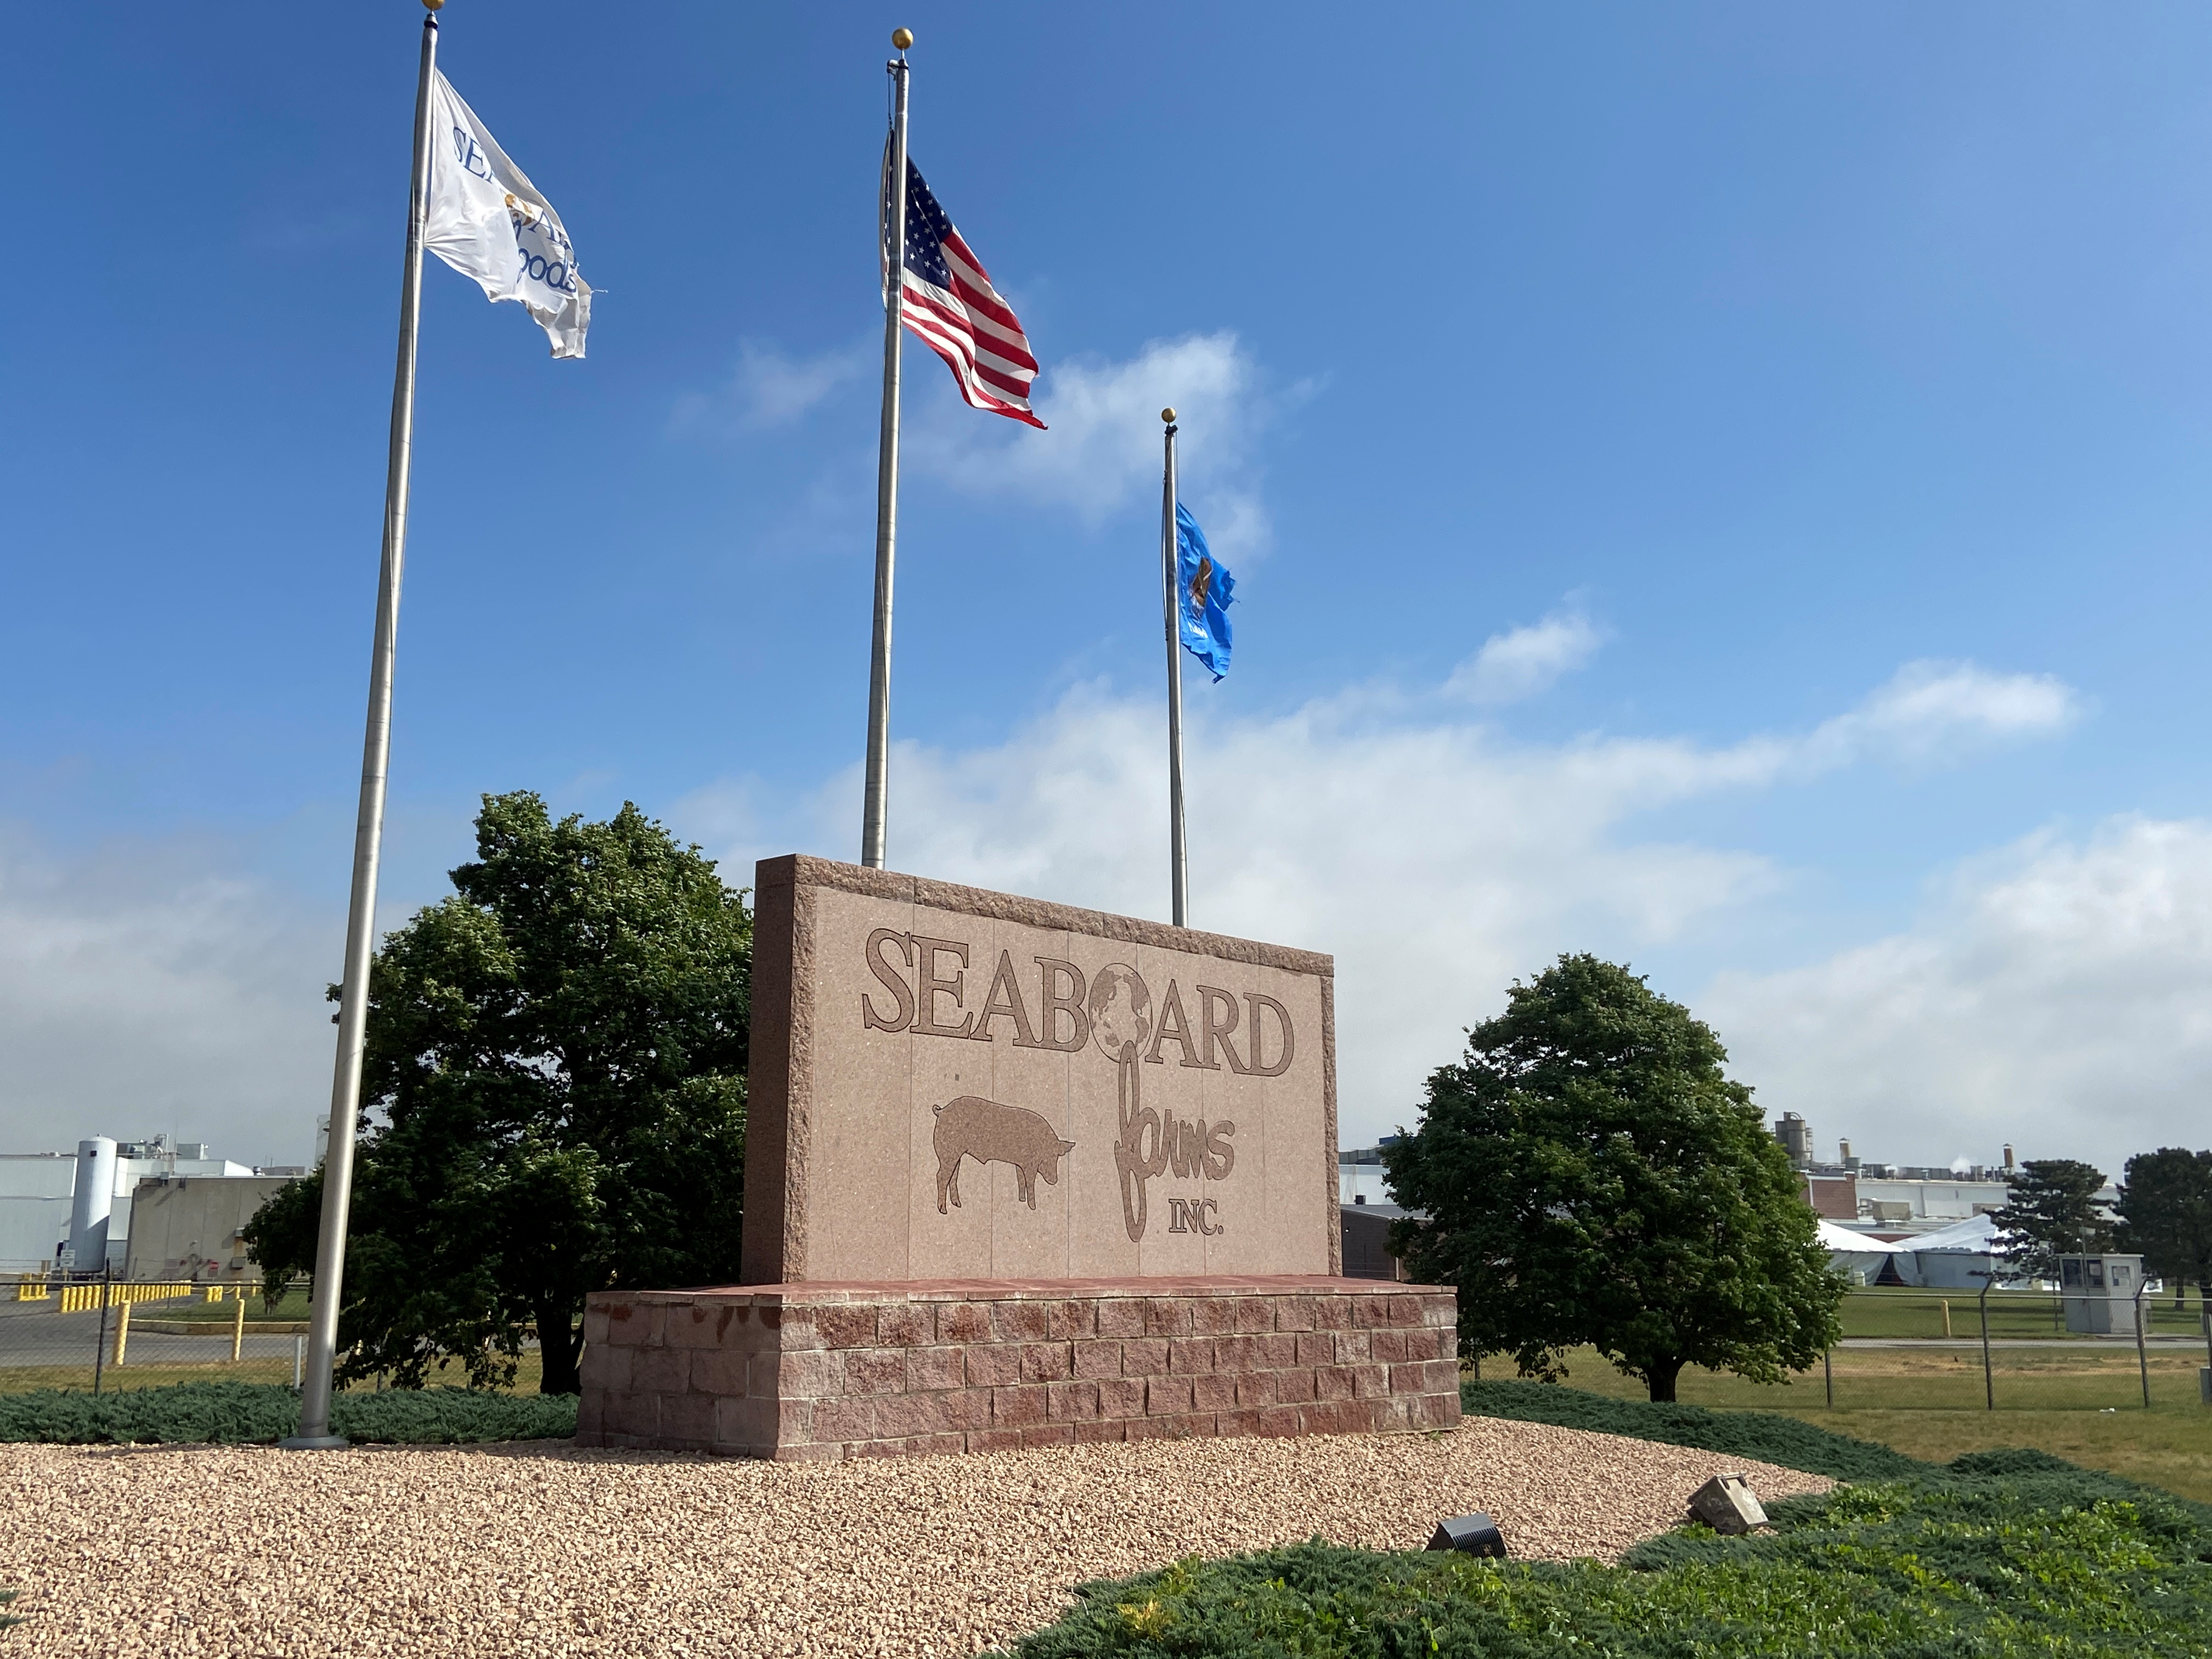 File photo: The logo of Seaboard Foods hog processing plant, which has tested nearly all its workers for the coronavirus disease (COVID-19) after an outbreak at the facility, is seen in Guymon, Oklahoma, U.S., May 13, 2020. REUTERS/Andrew Hay